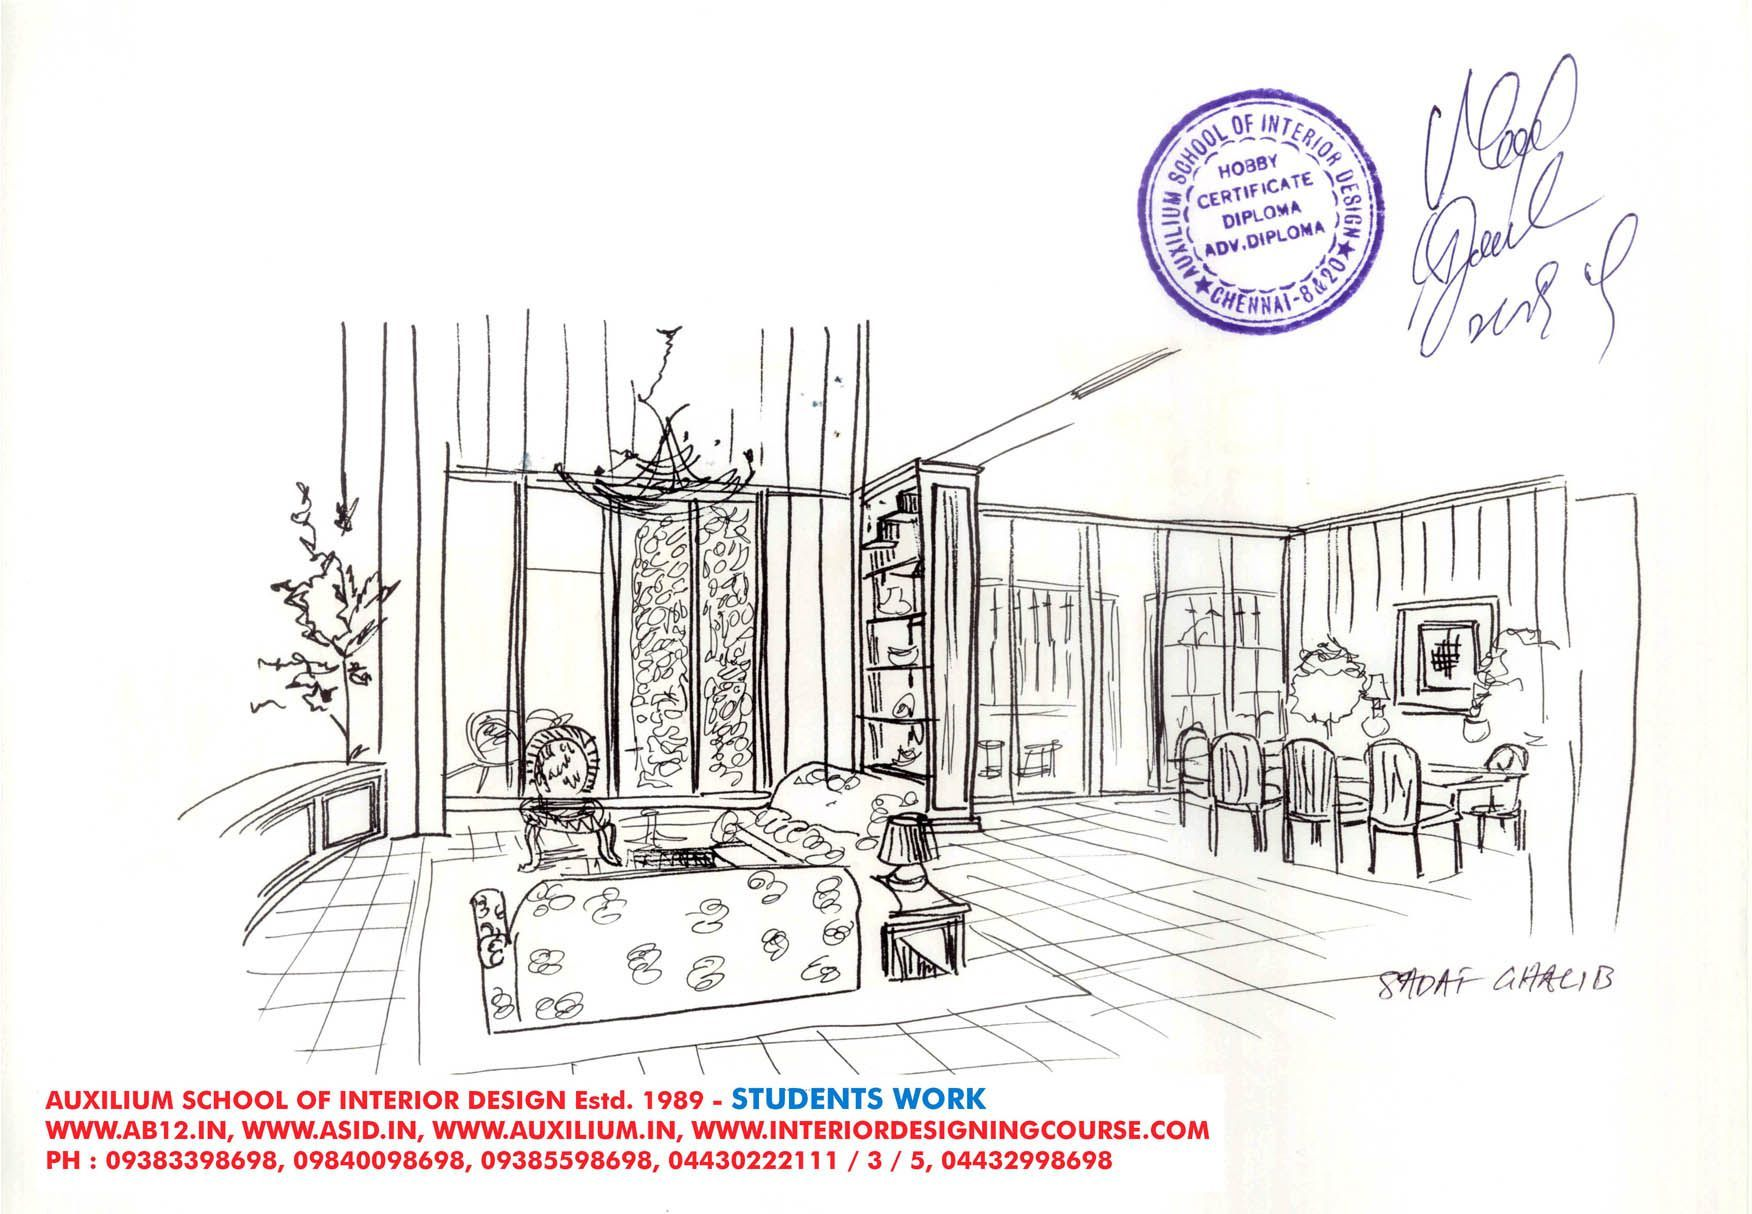 Interior Design Bachelor Degree Gandum Interior Design Courses Interior Design Design